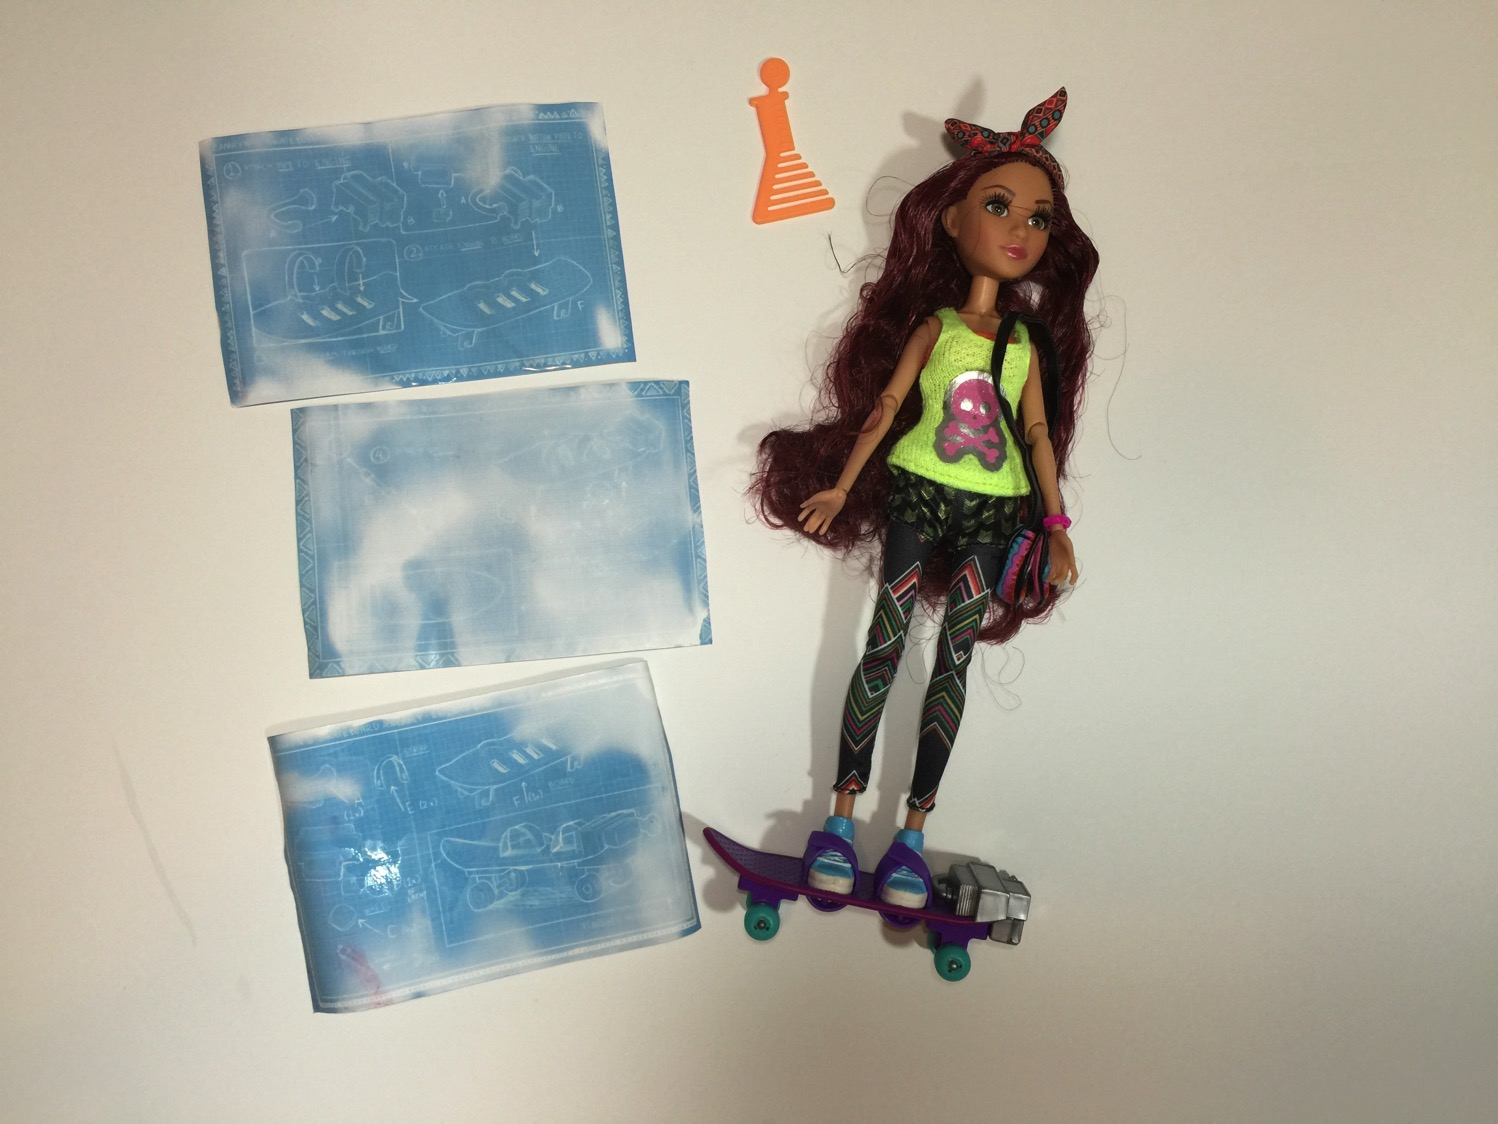 4 S.T.E.A.M Experiments inspired by Project Mc² and Camryn's Skateboard #SmartIsTheNewCool {VIDEO}